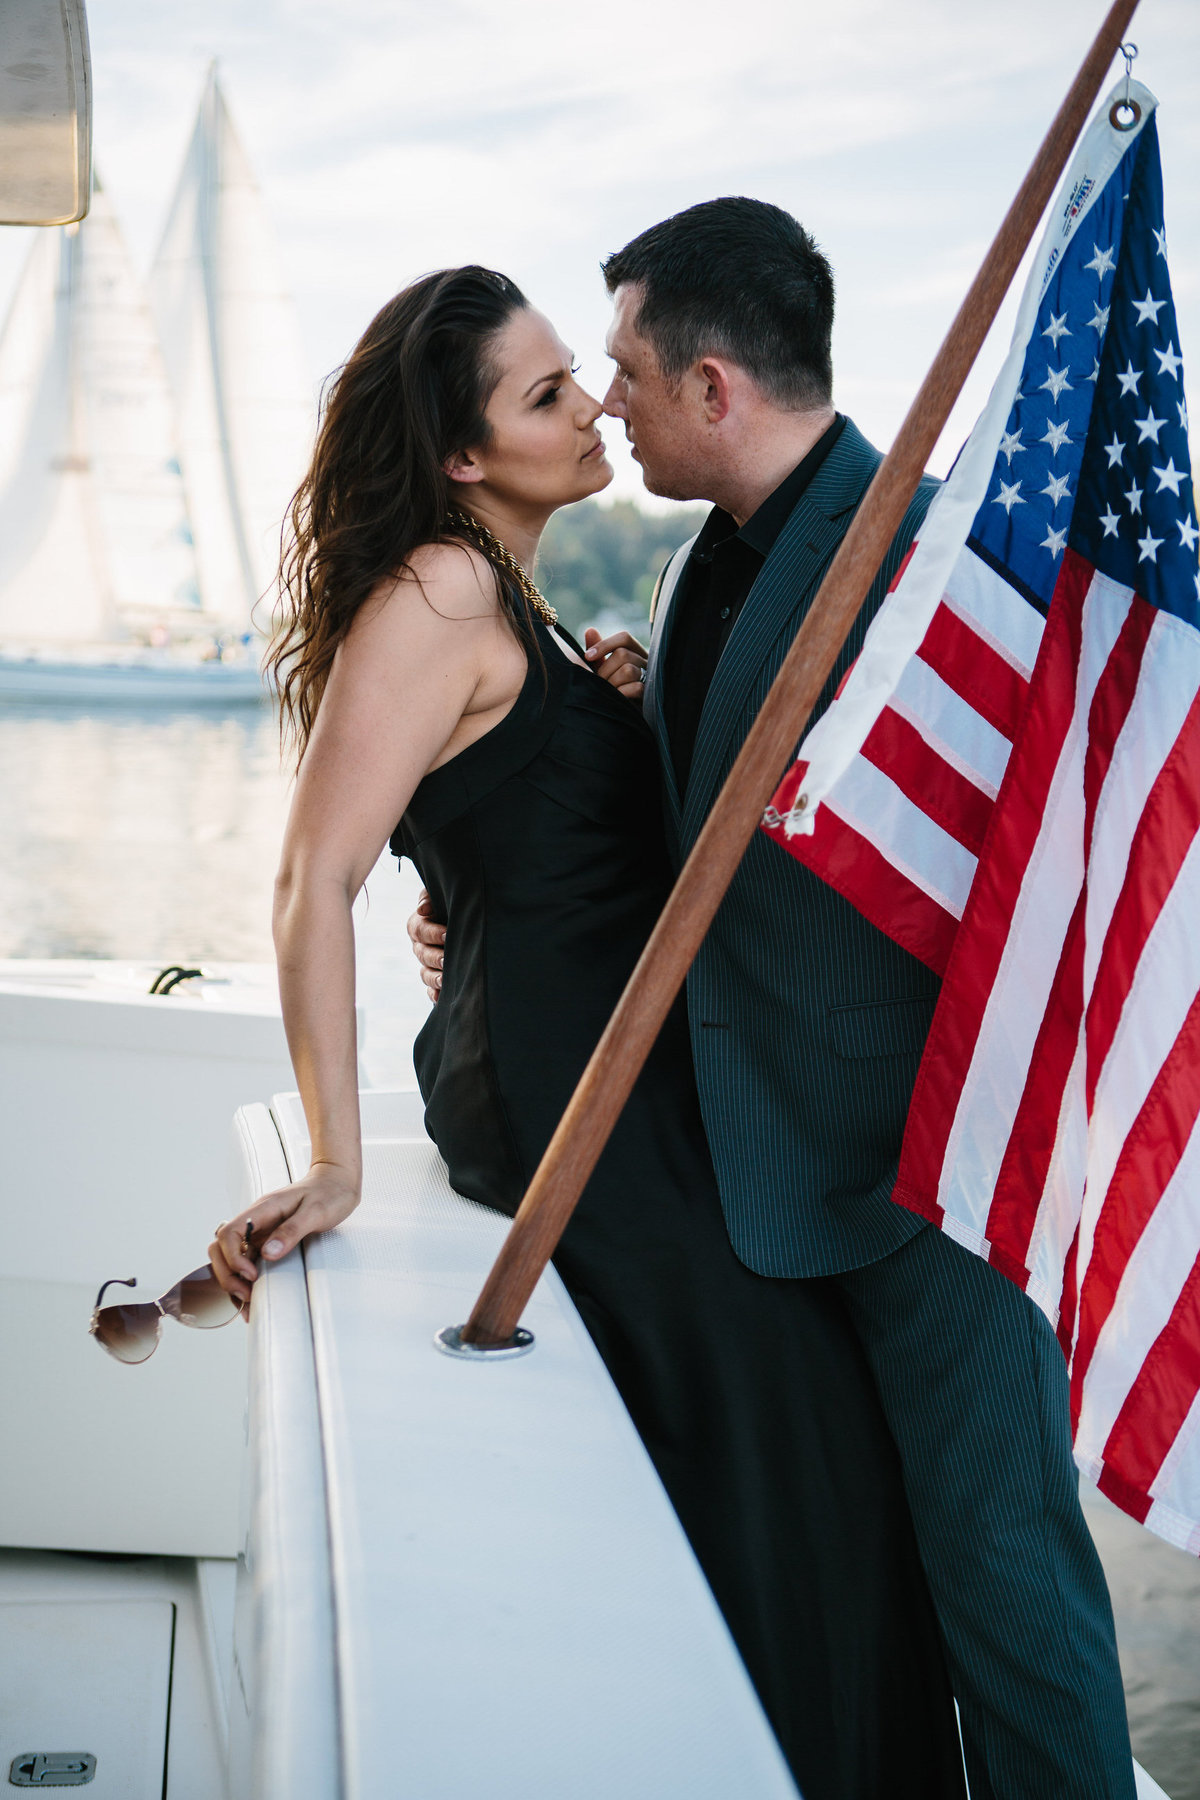 Melissa Kilner Photography Seattle Engagement Photographer-048